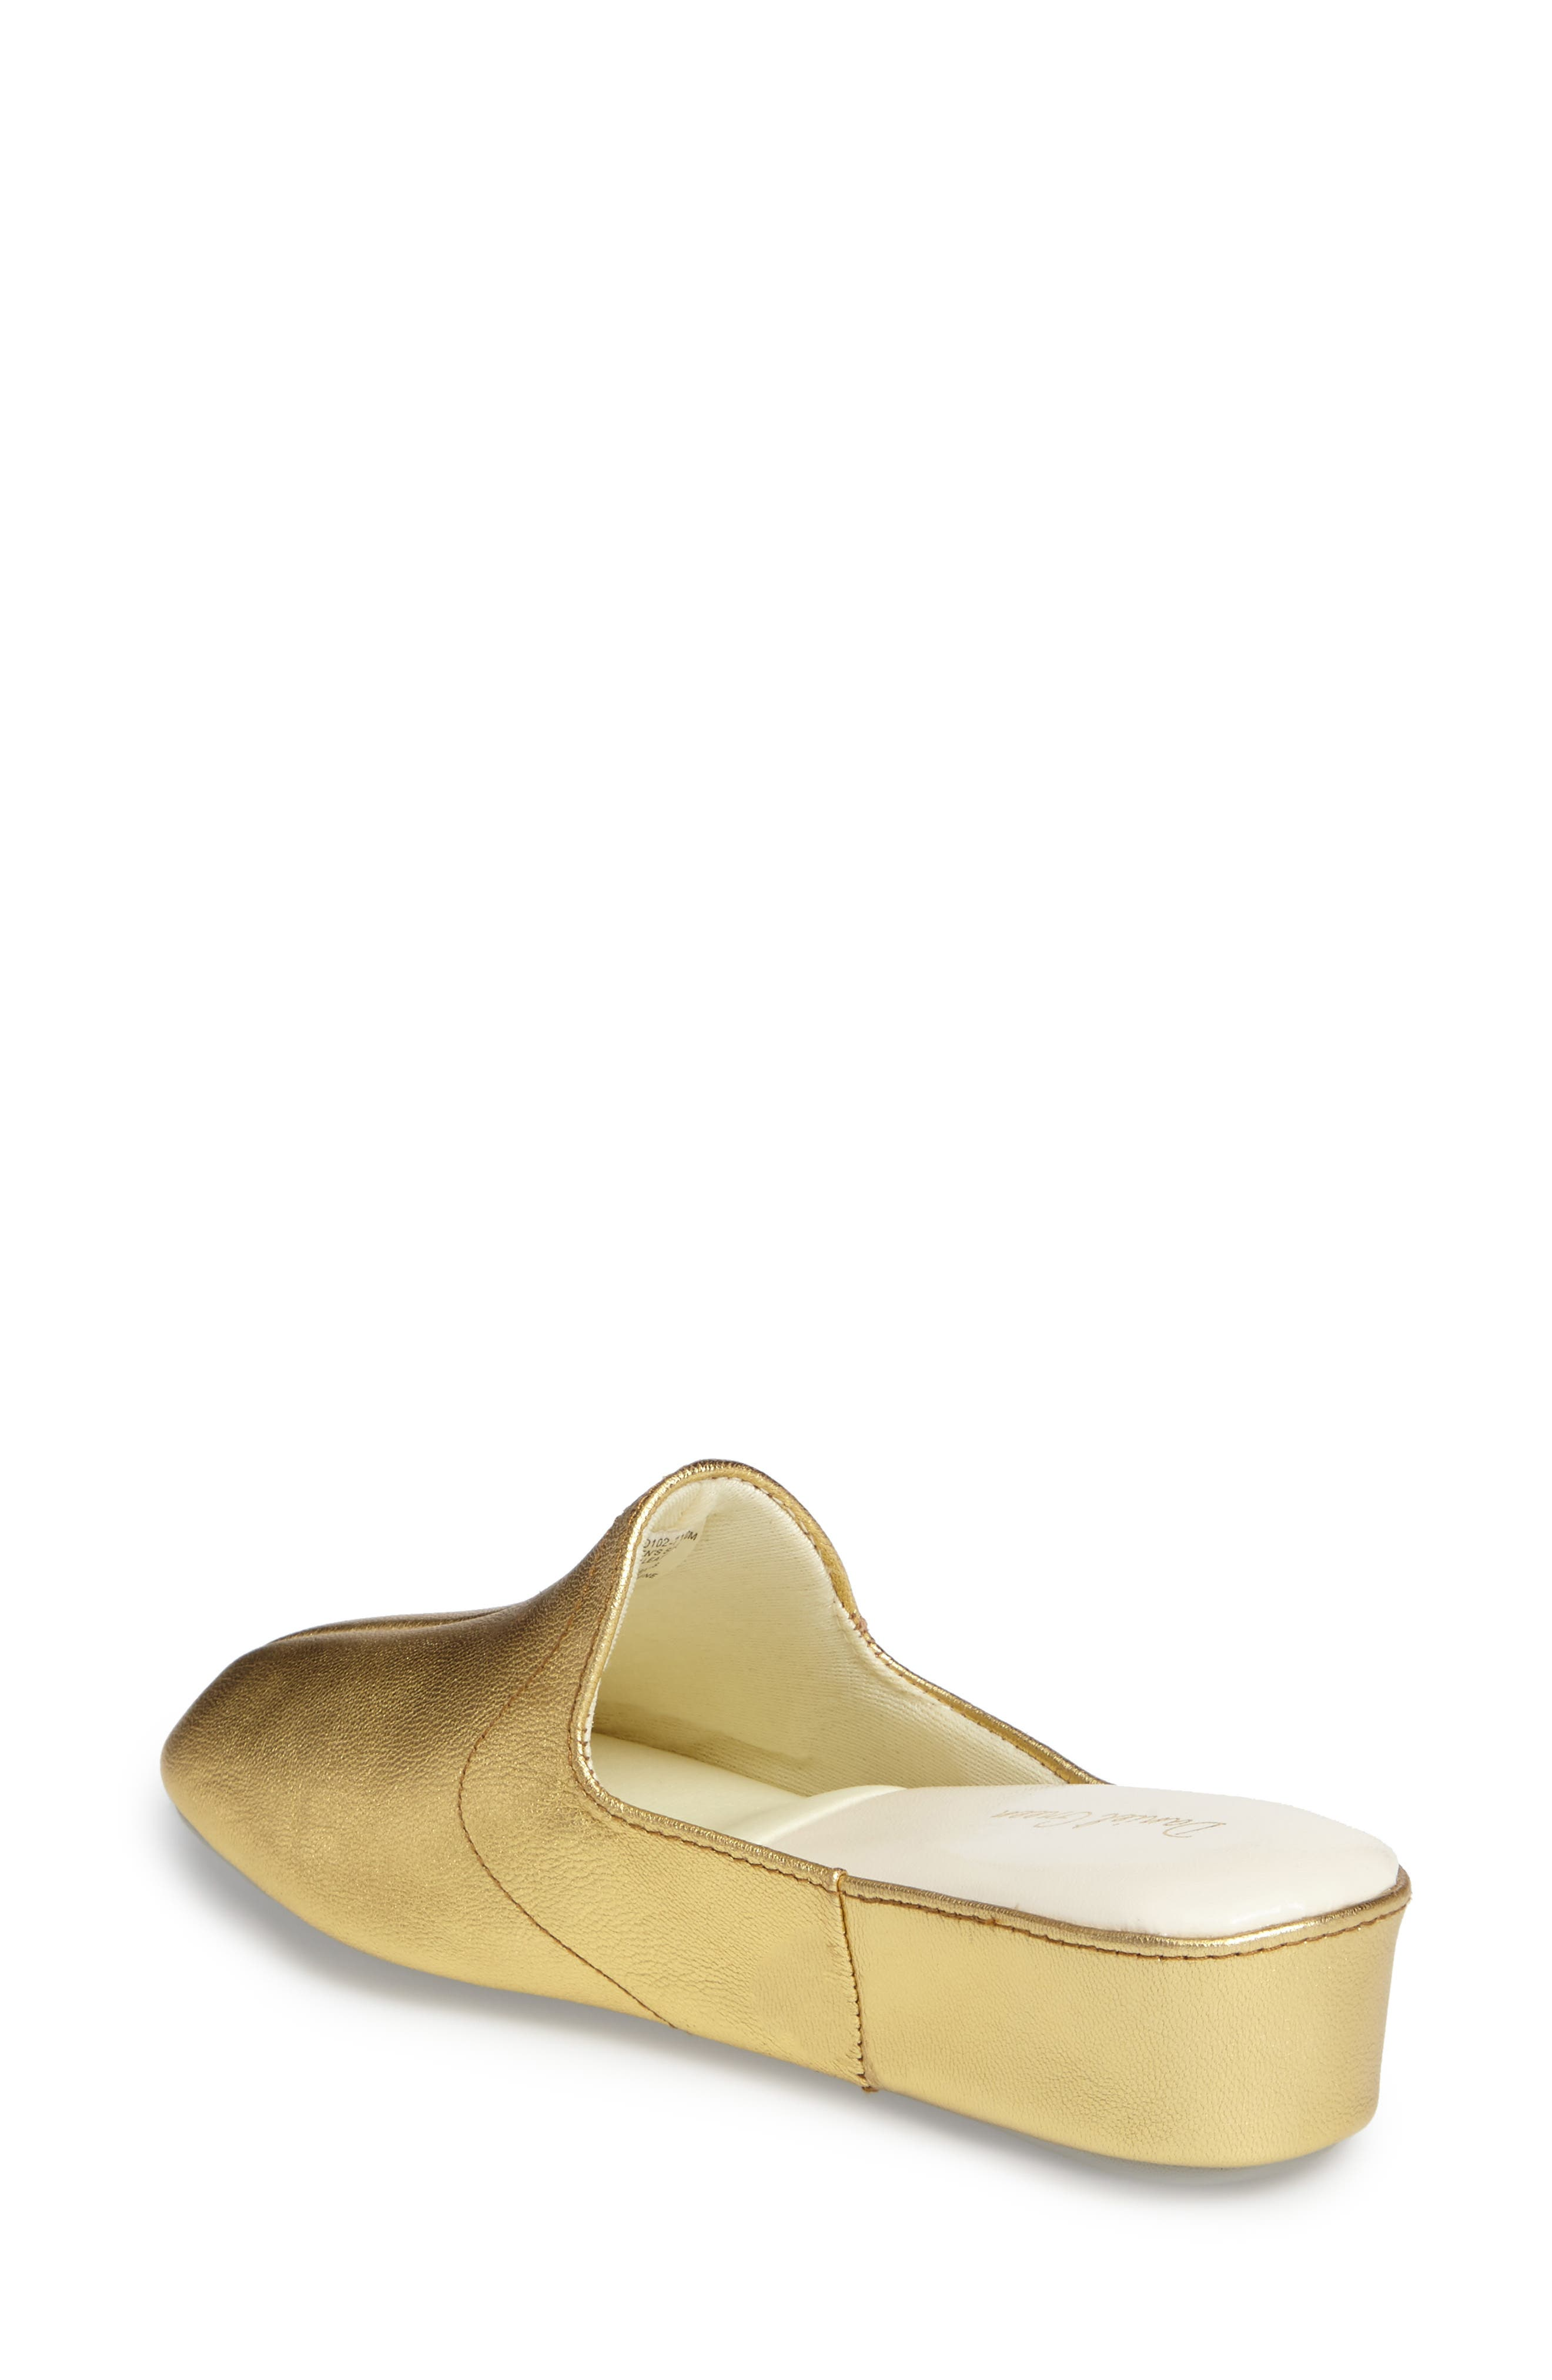 Glamour Scuff Slipper,                             Alternate thumbnail 2, color,                             Gold Leather